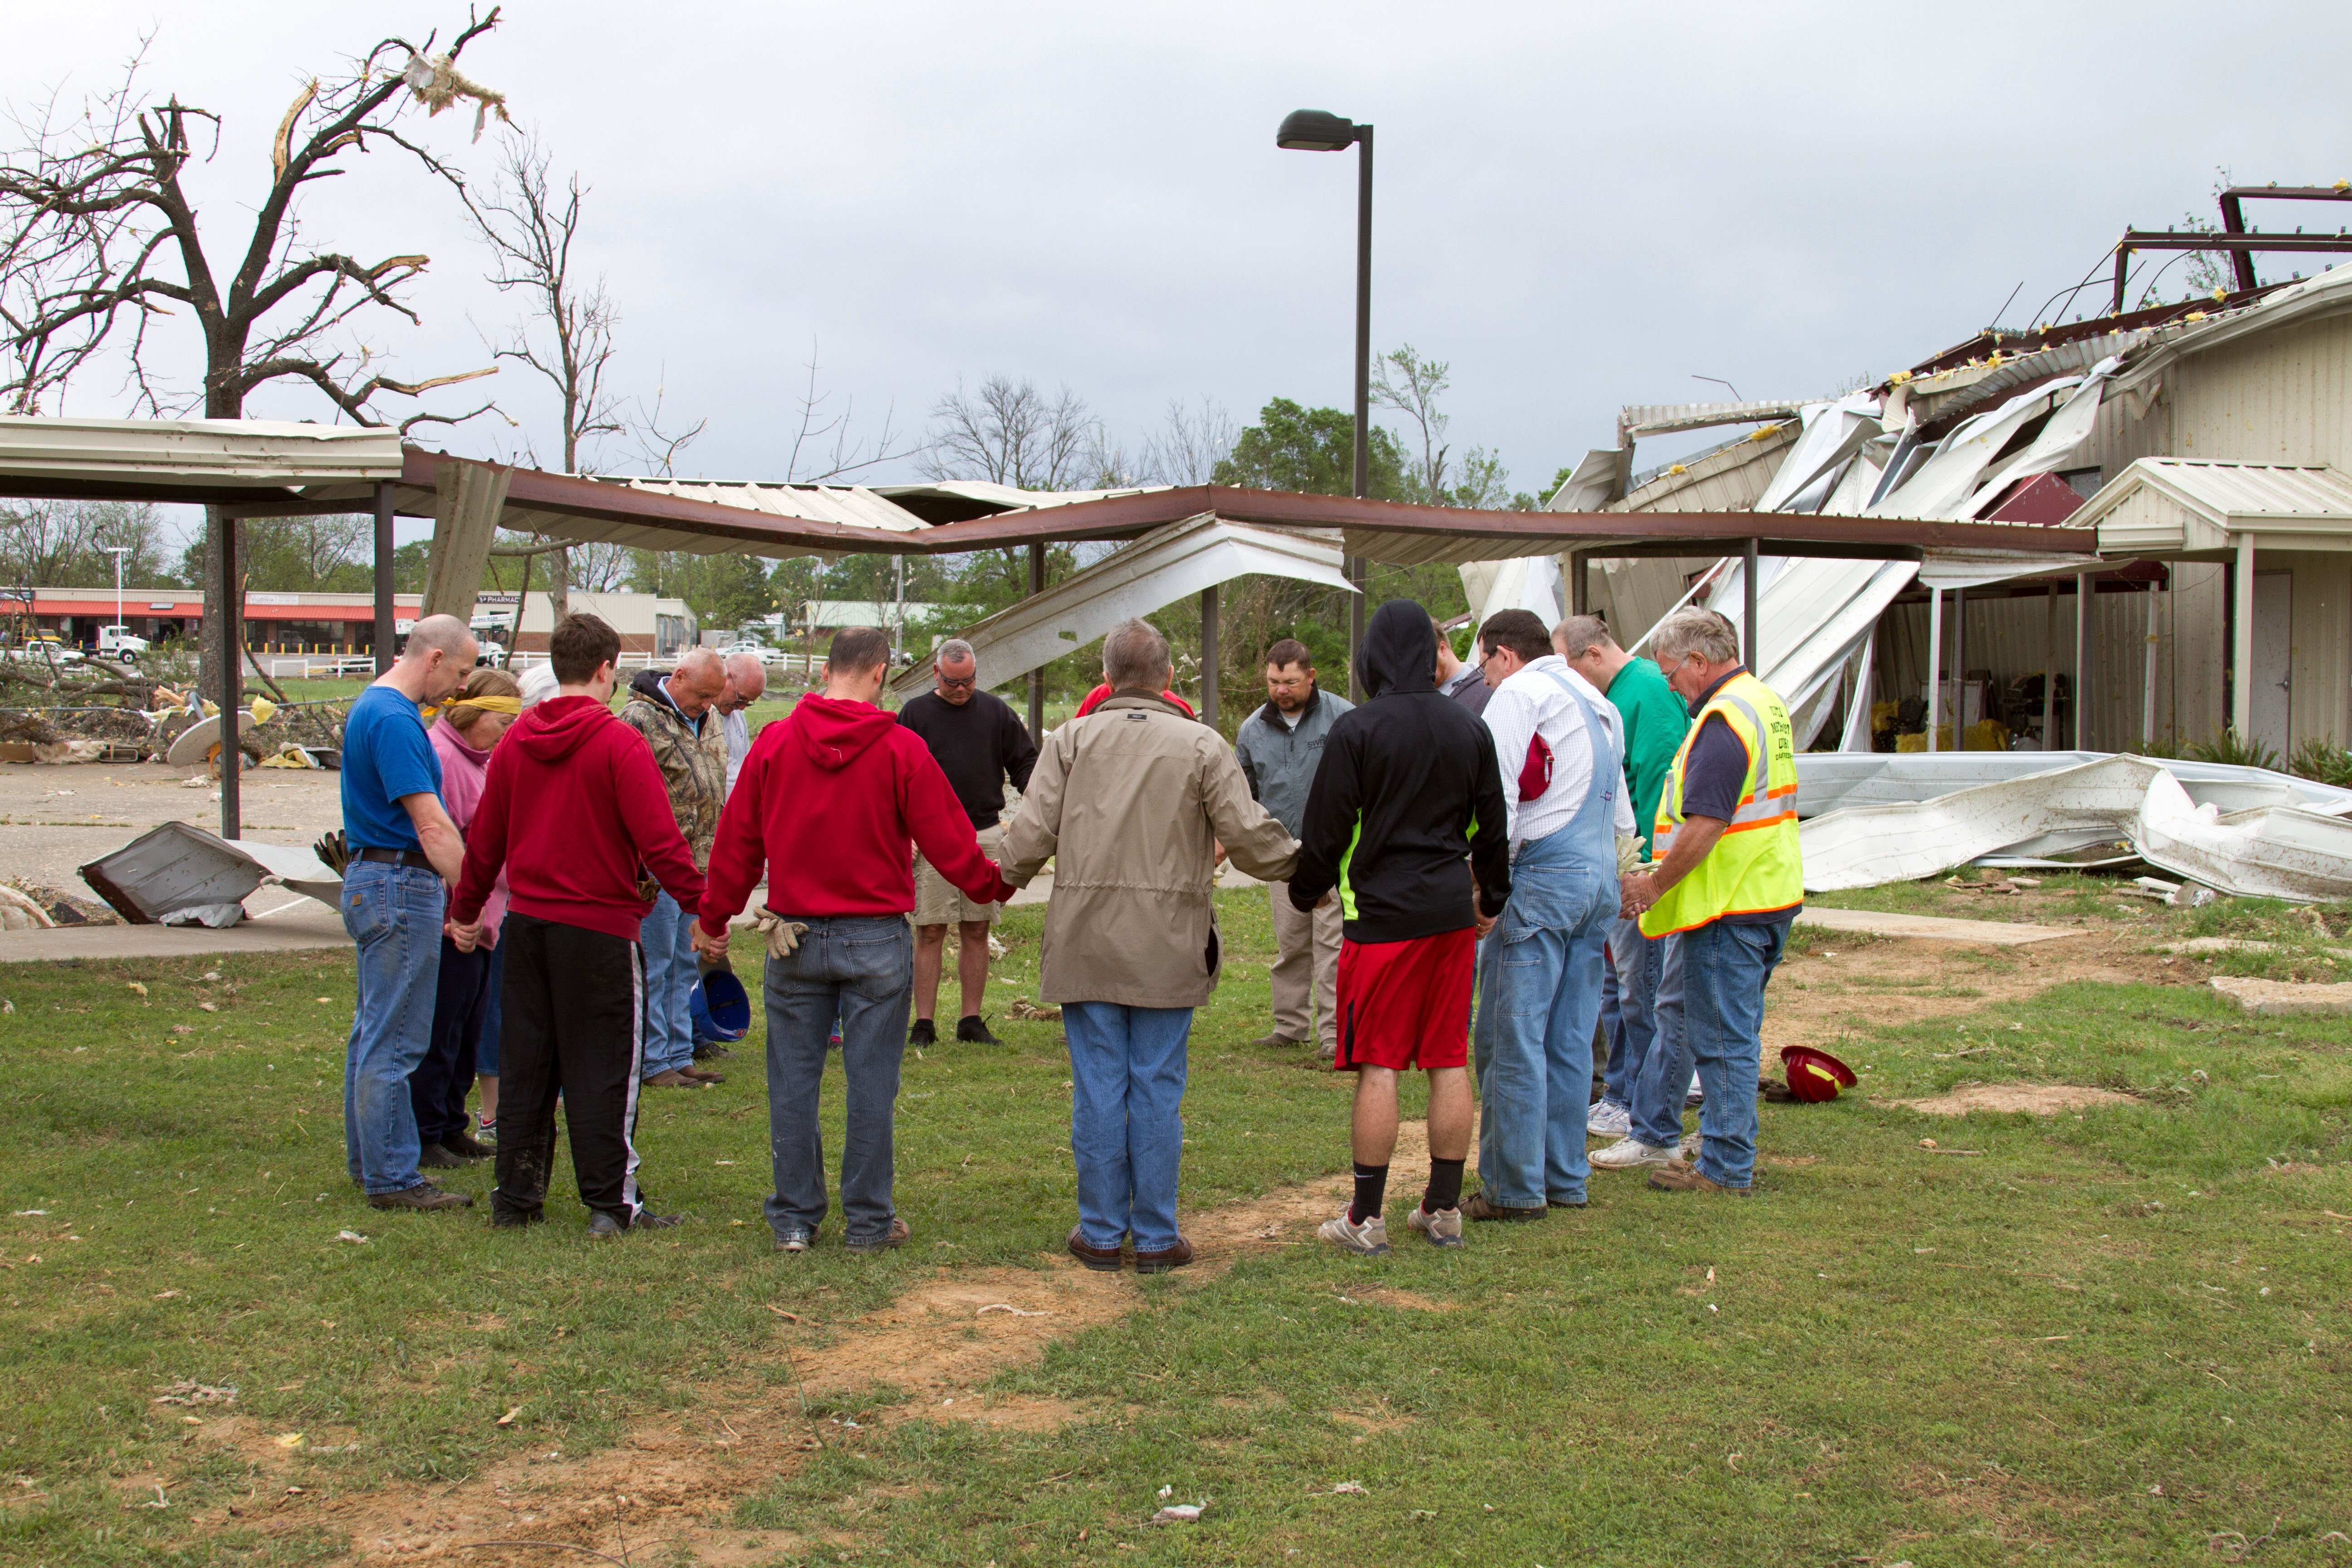 Bishop Gary Mueller (in brown jacket, back to the camera) prays for and with members of Vilonia UMC who are helping with clean-up on April 29, 2014, in the wake of the tornado that ripped through the central Arkansas town two days earlier. Photo by Amy Forbus, Arkansas United Methodist.